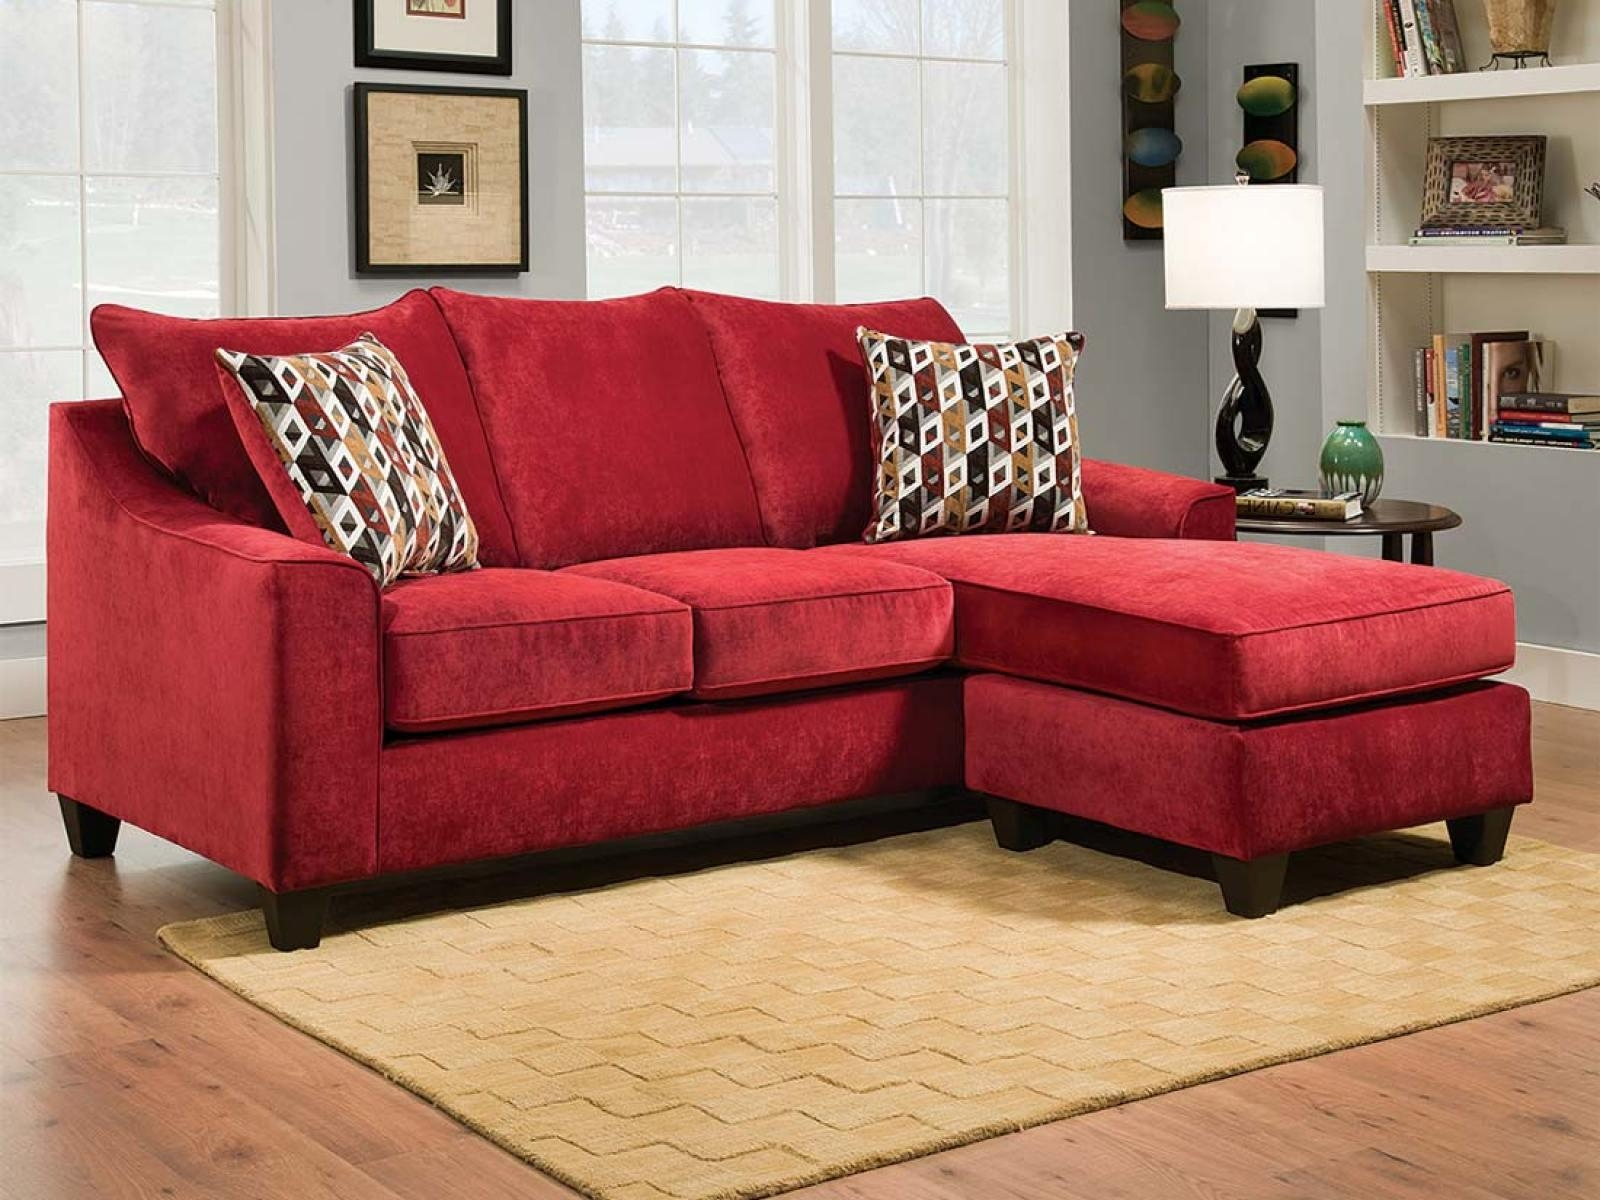 ▻ Sofa : 8 Wonderful Chenille Sofa Chenille Modular Sectional For Chenille Sectional Sofas With Chaise (Image 1 of 20)